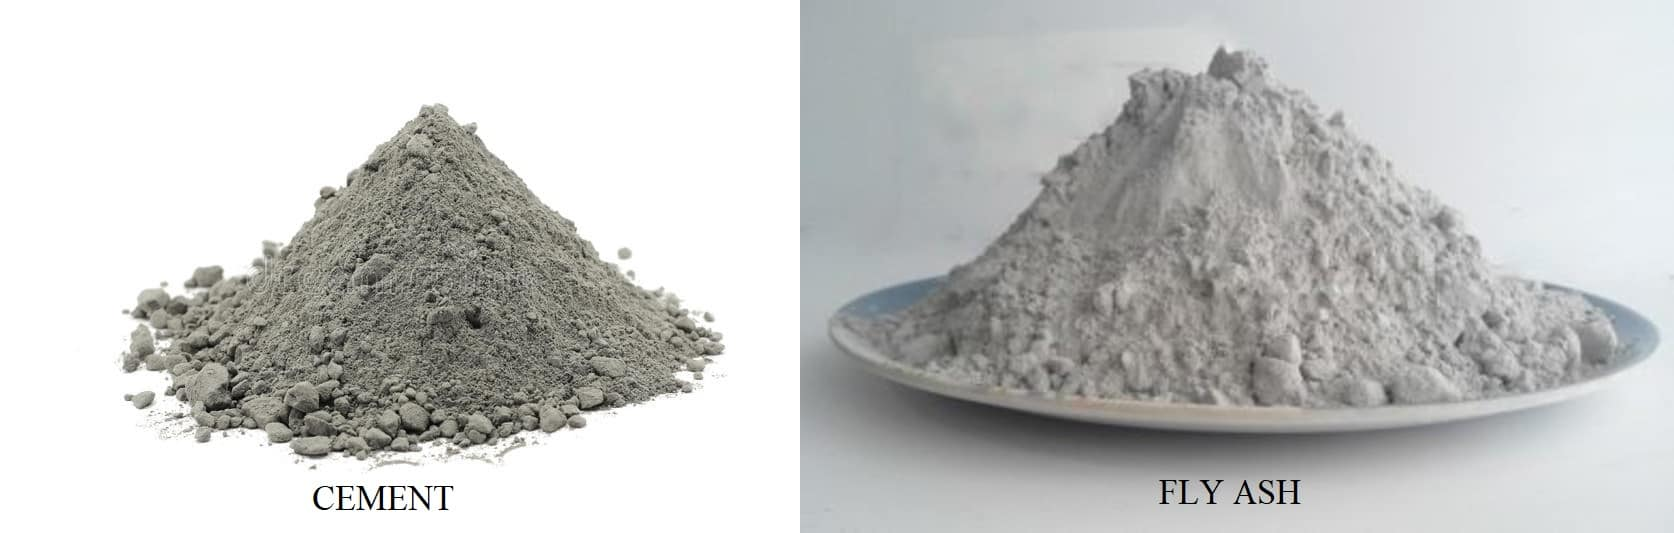 Fly Ash Concrete >> Concrete without Cement - A Green Alternative Fly Ash